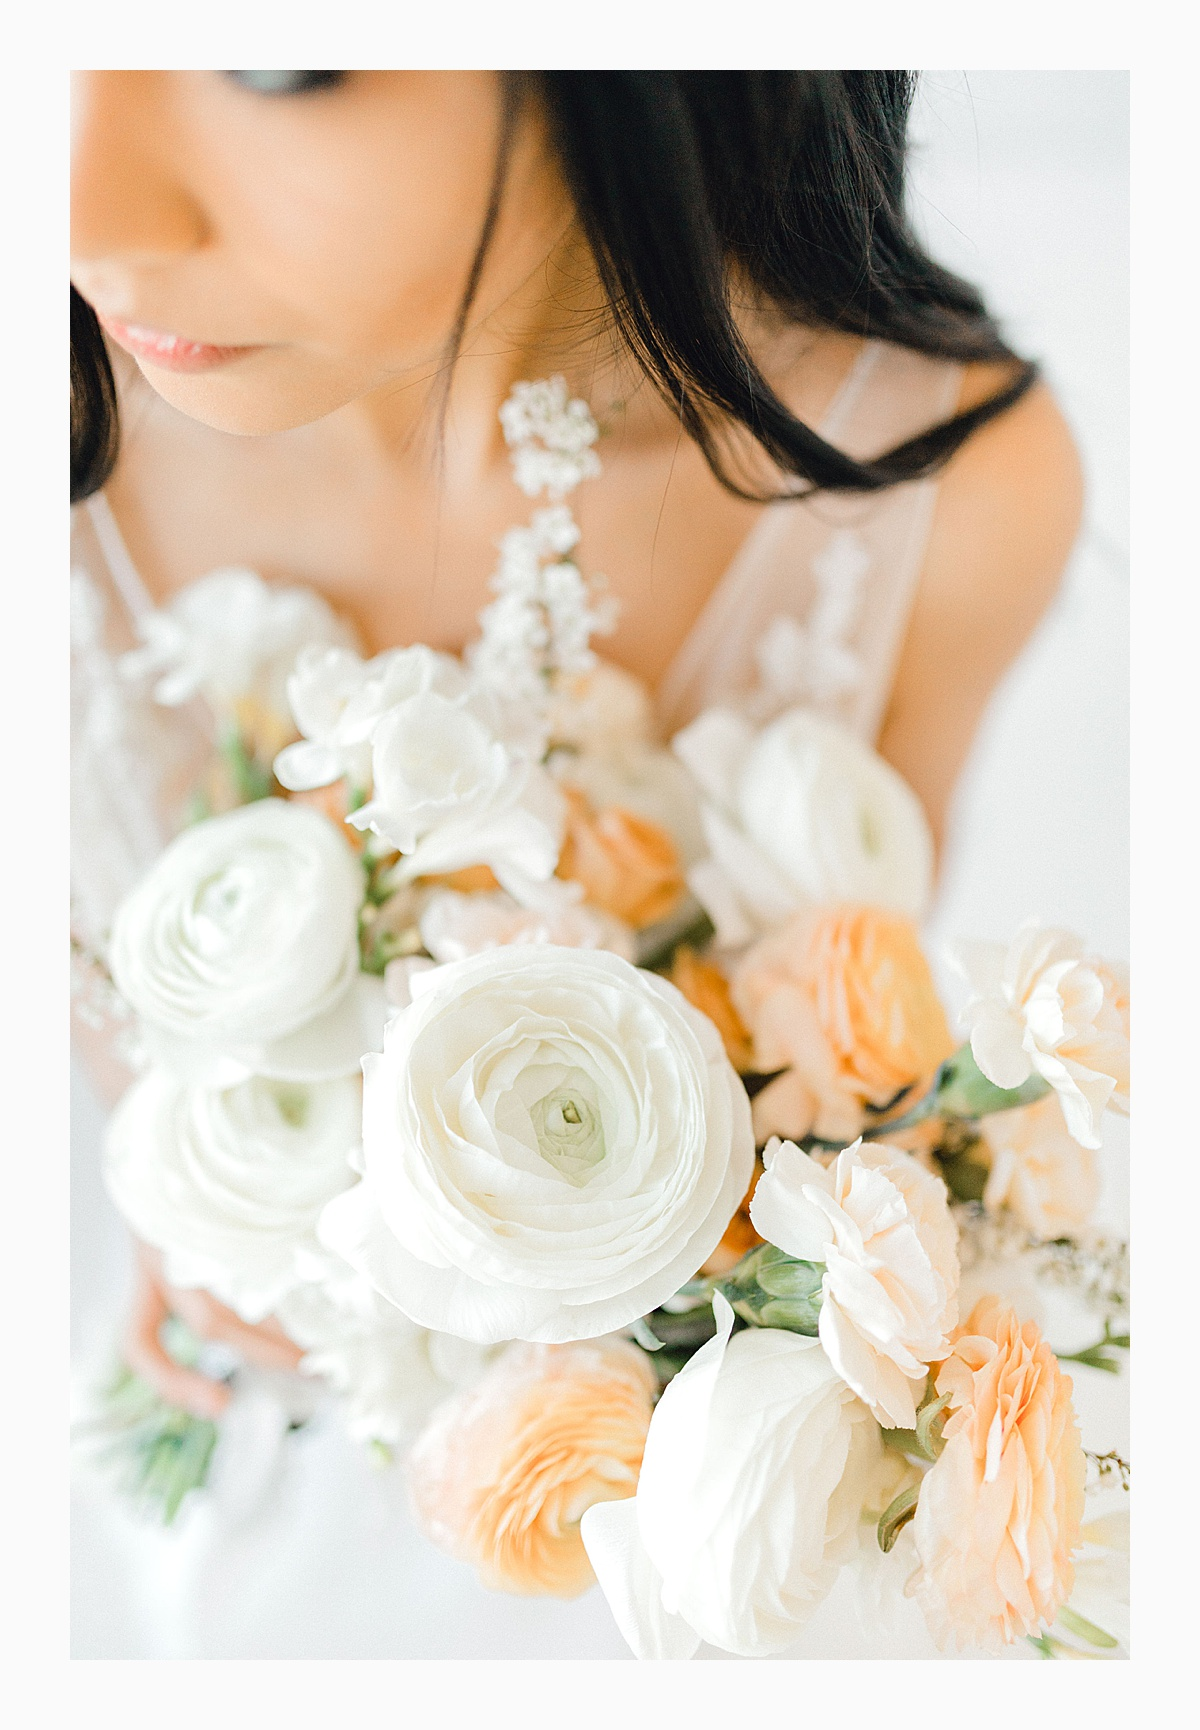 The Bemis Building in downtown Seattle is one of my favorite places to use for photo shoots!  This styled bridal shoot with touches of peach and white was dreamy.  #emmarosecompany #kindredpresets #seattlebride_0021.jpg